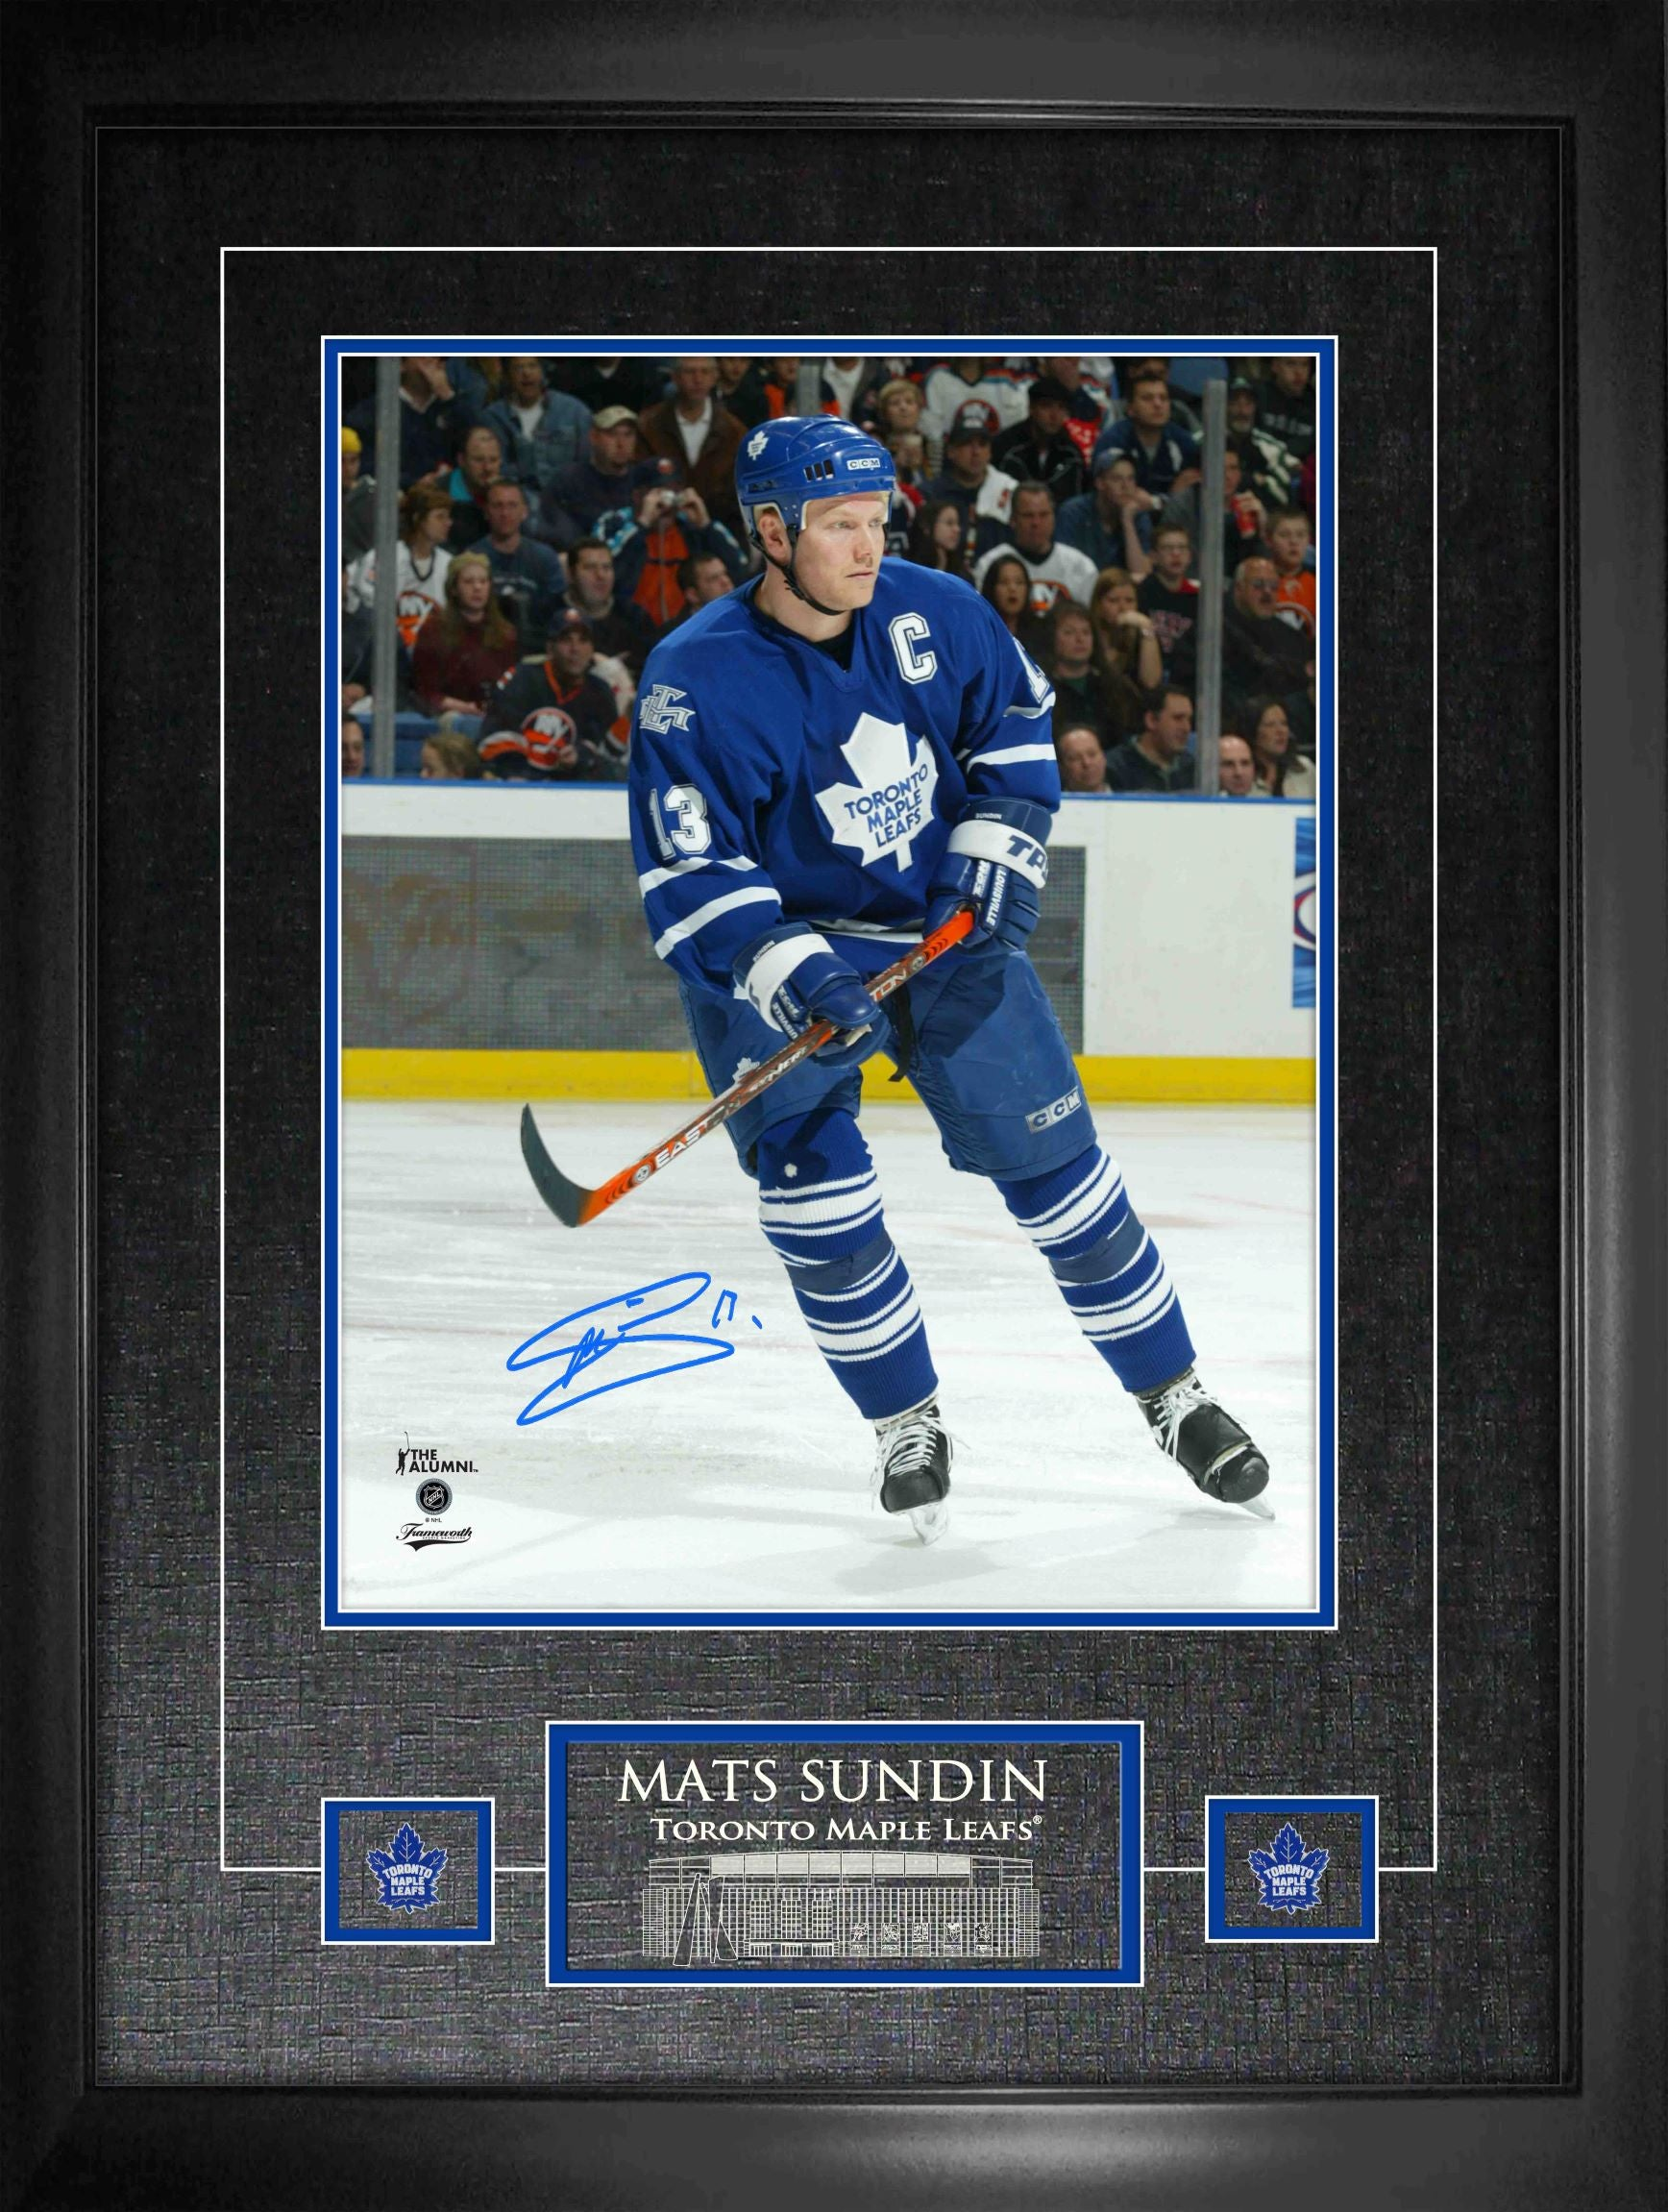 "Mats Sundin Maple Leafs Signed 11""x 14"" Photo Framed"